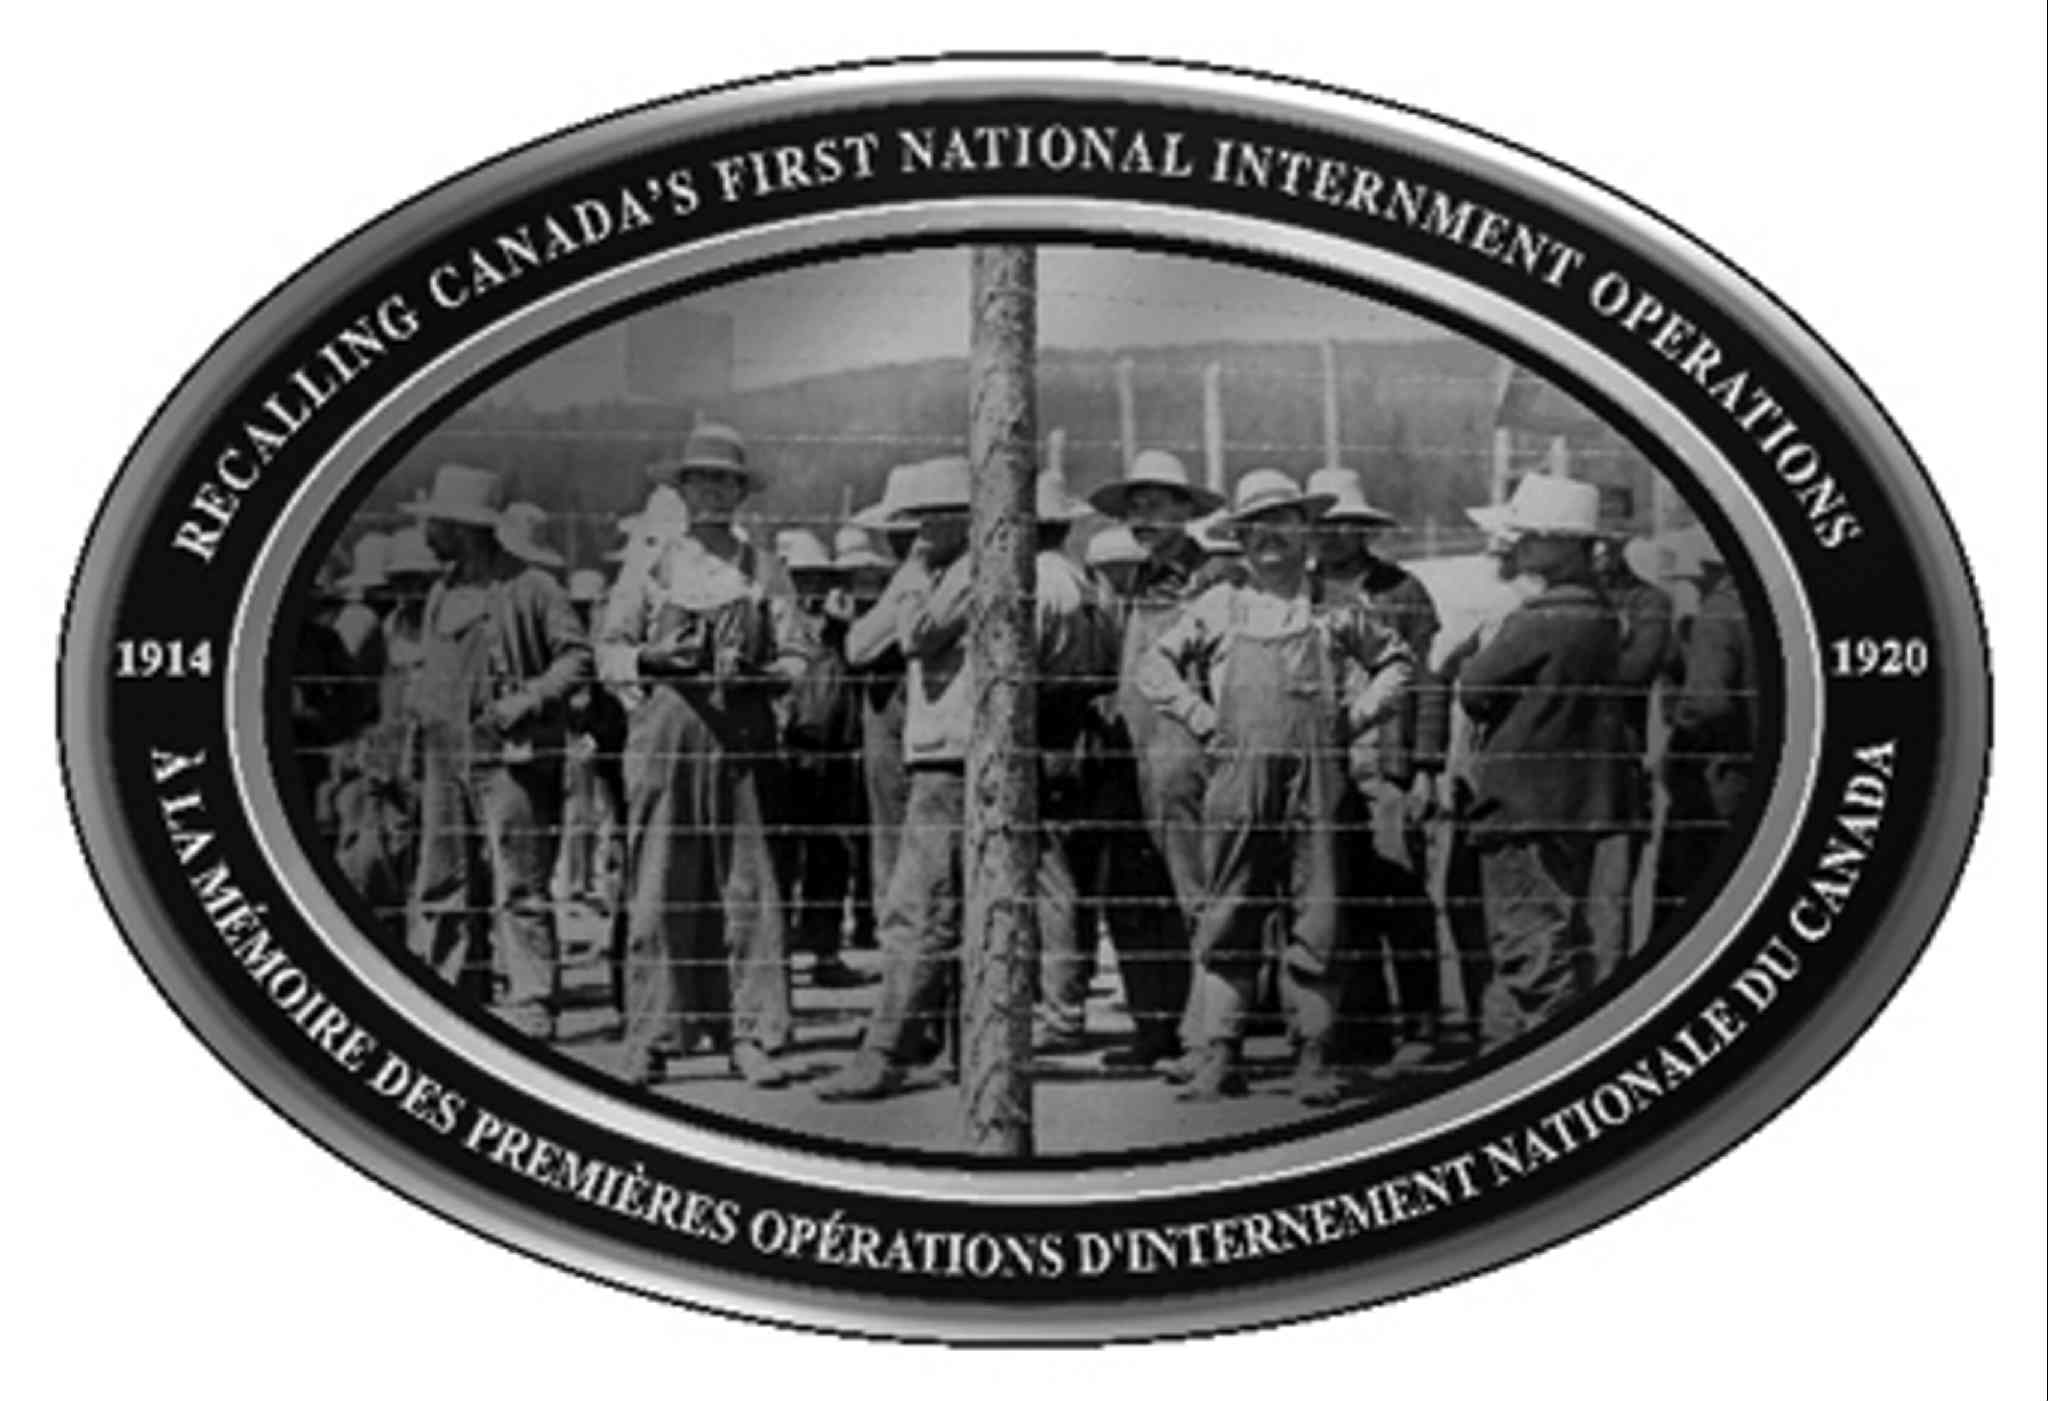 An example of the image which will be displayed on 100 plaques across Canada, recognizing those who were stripped of their civil liberties following the passage of the War Measures Act on Aug. 22, 1914.